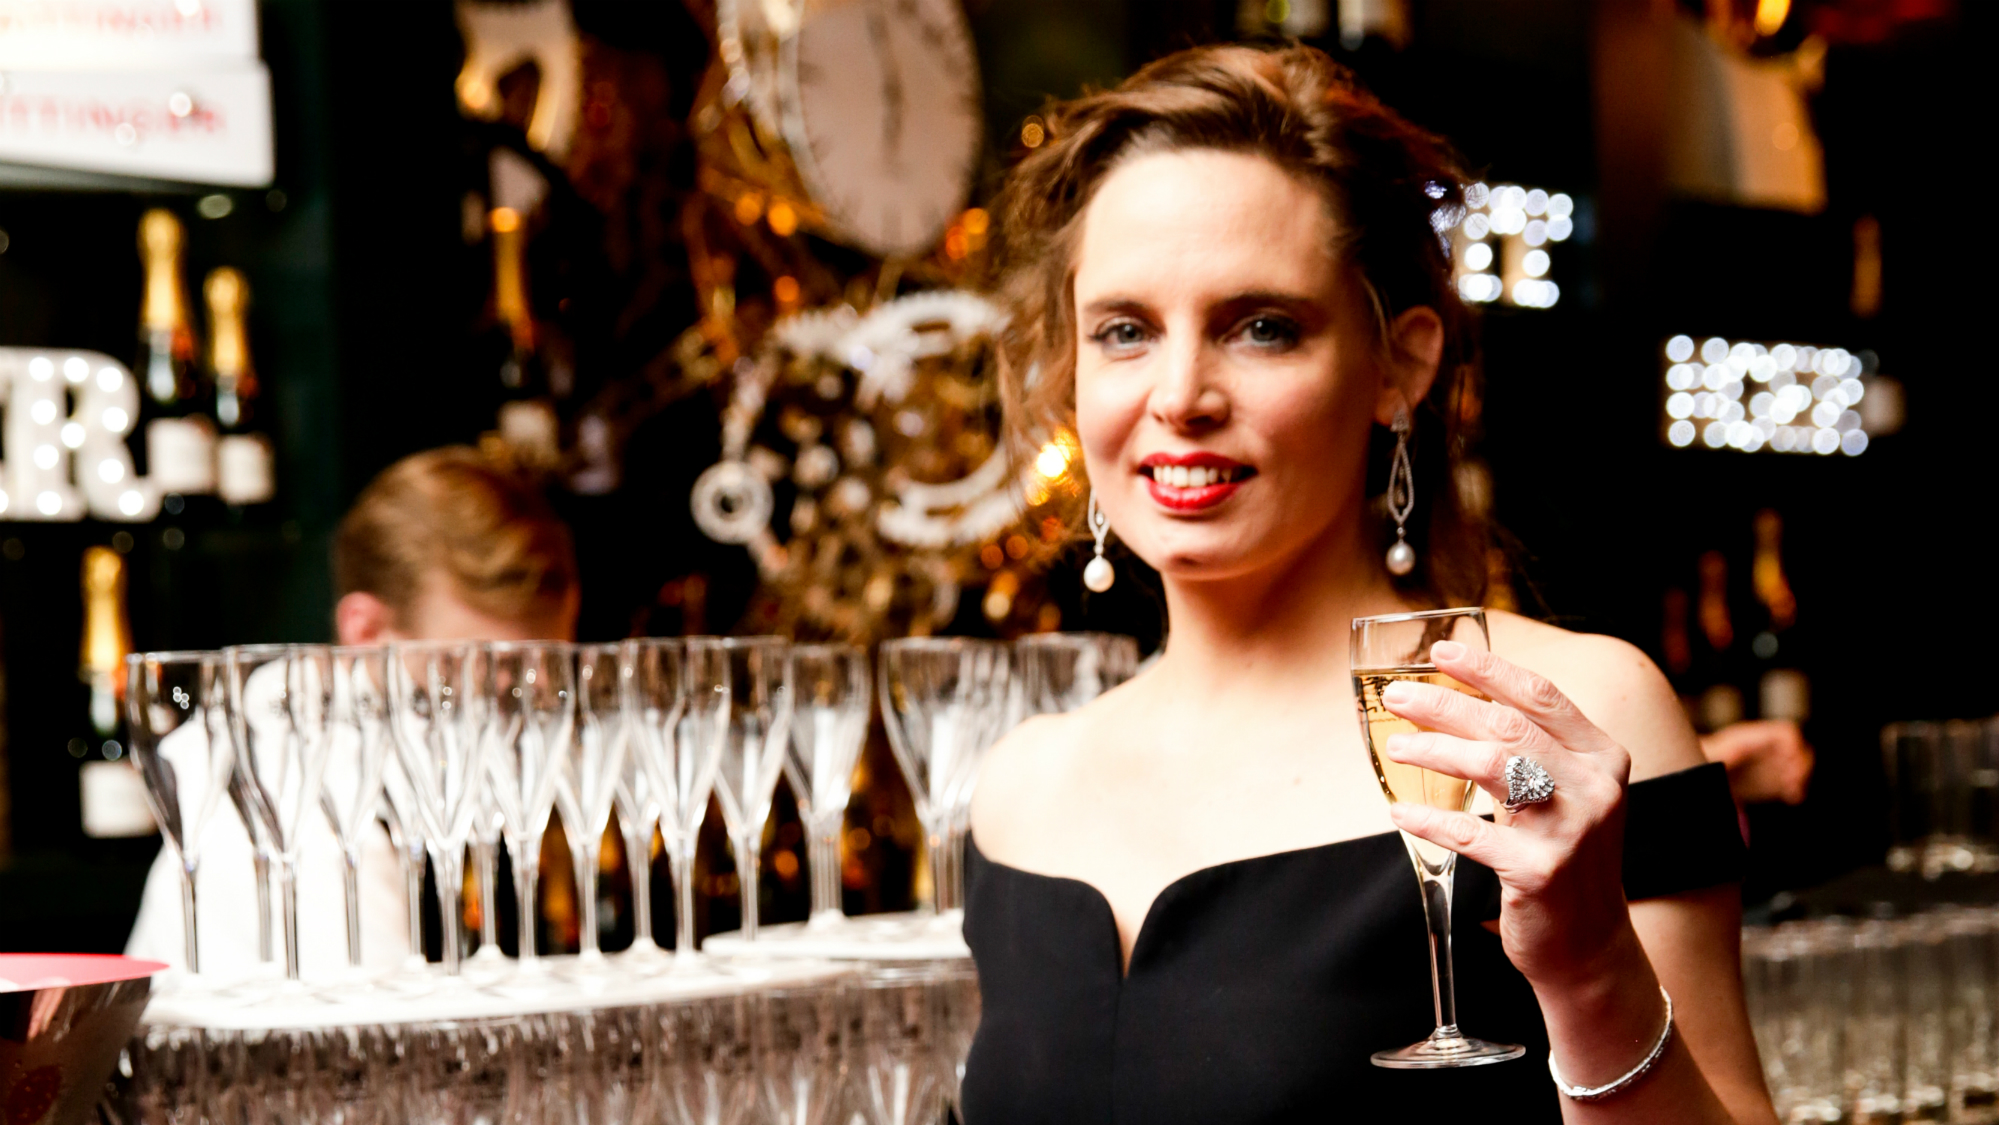 Vitalie Taittinger: I don't need to turn myself into a man to achieve the same things'